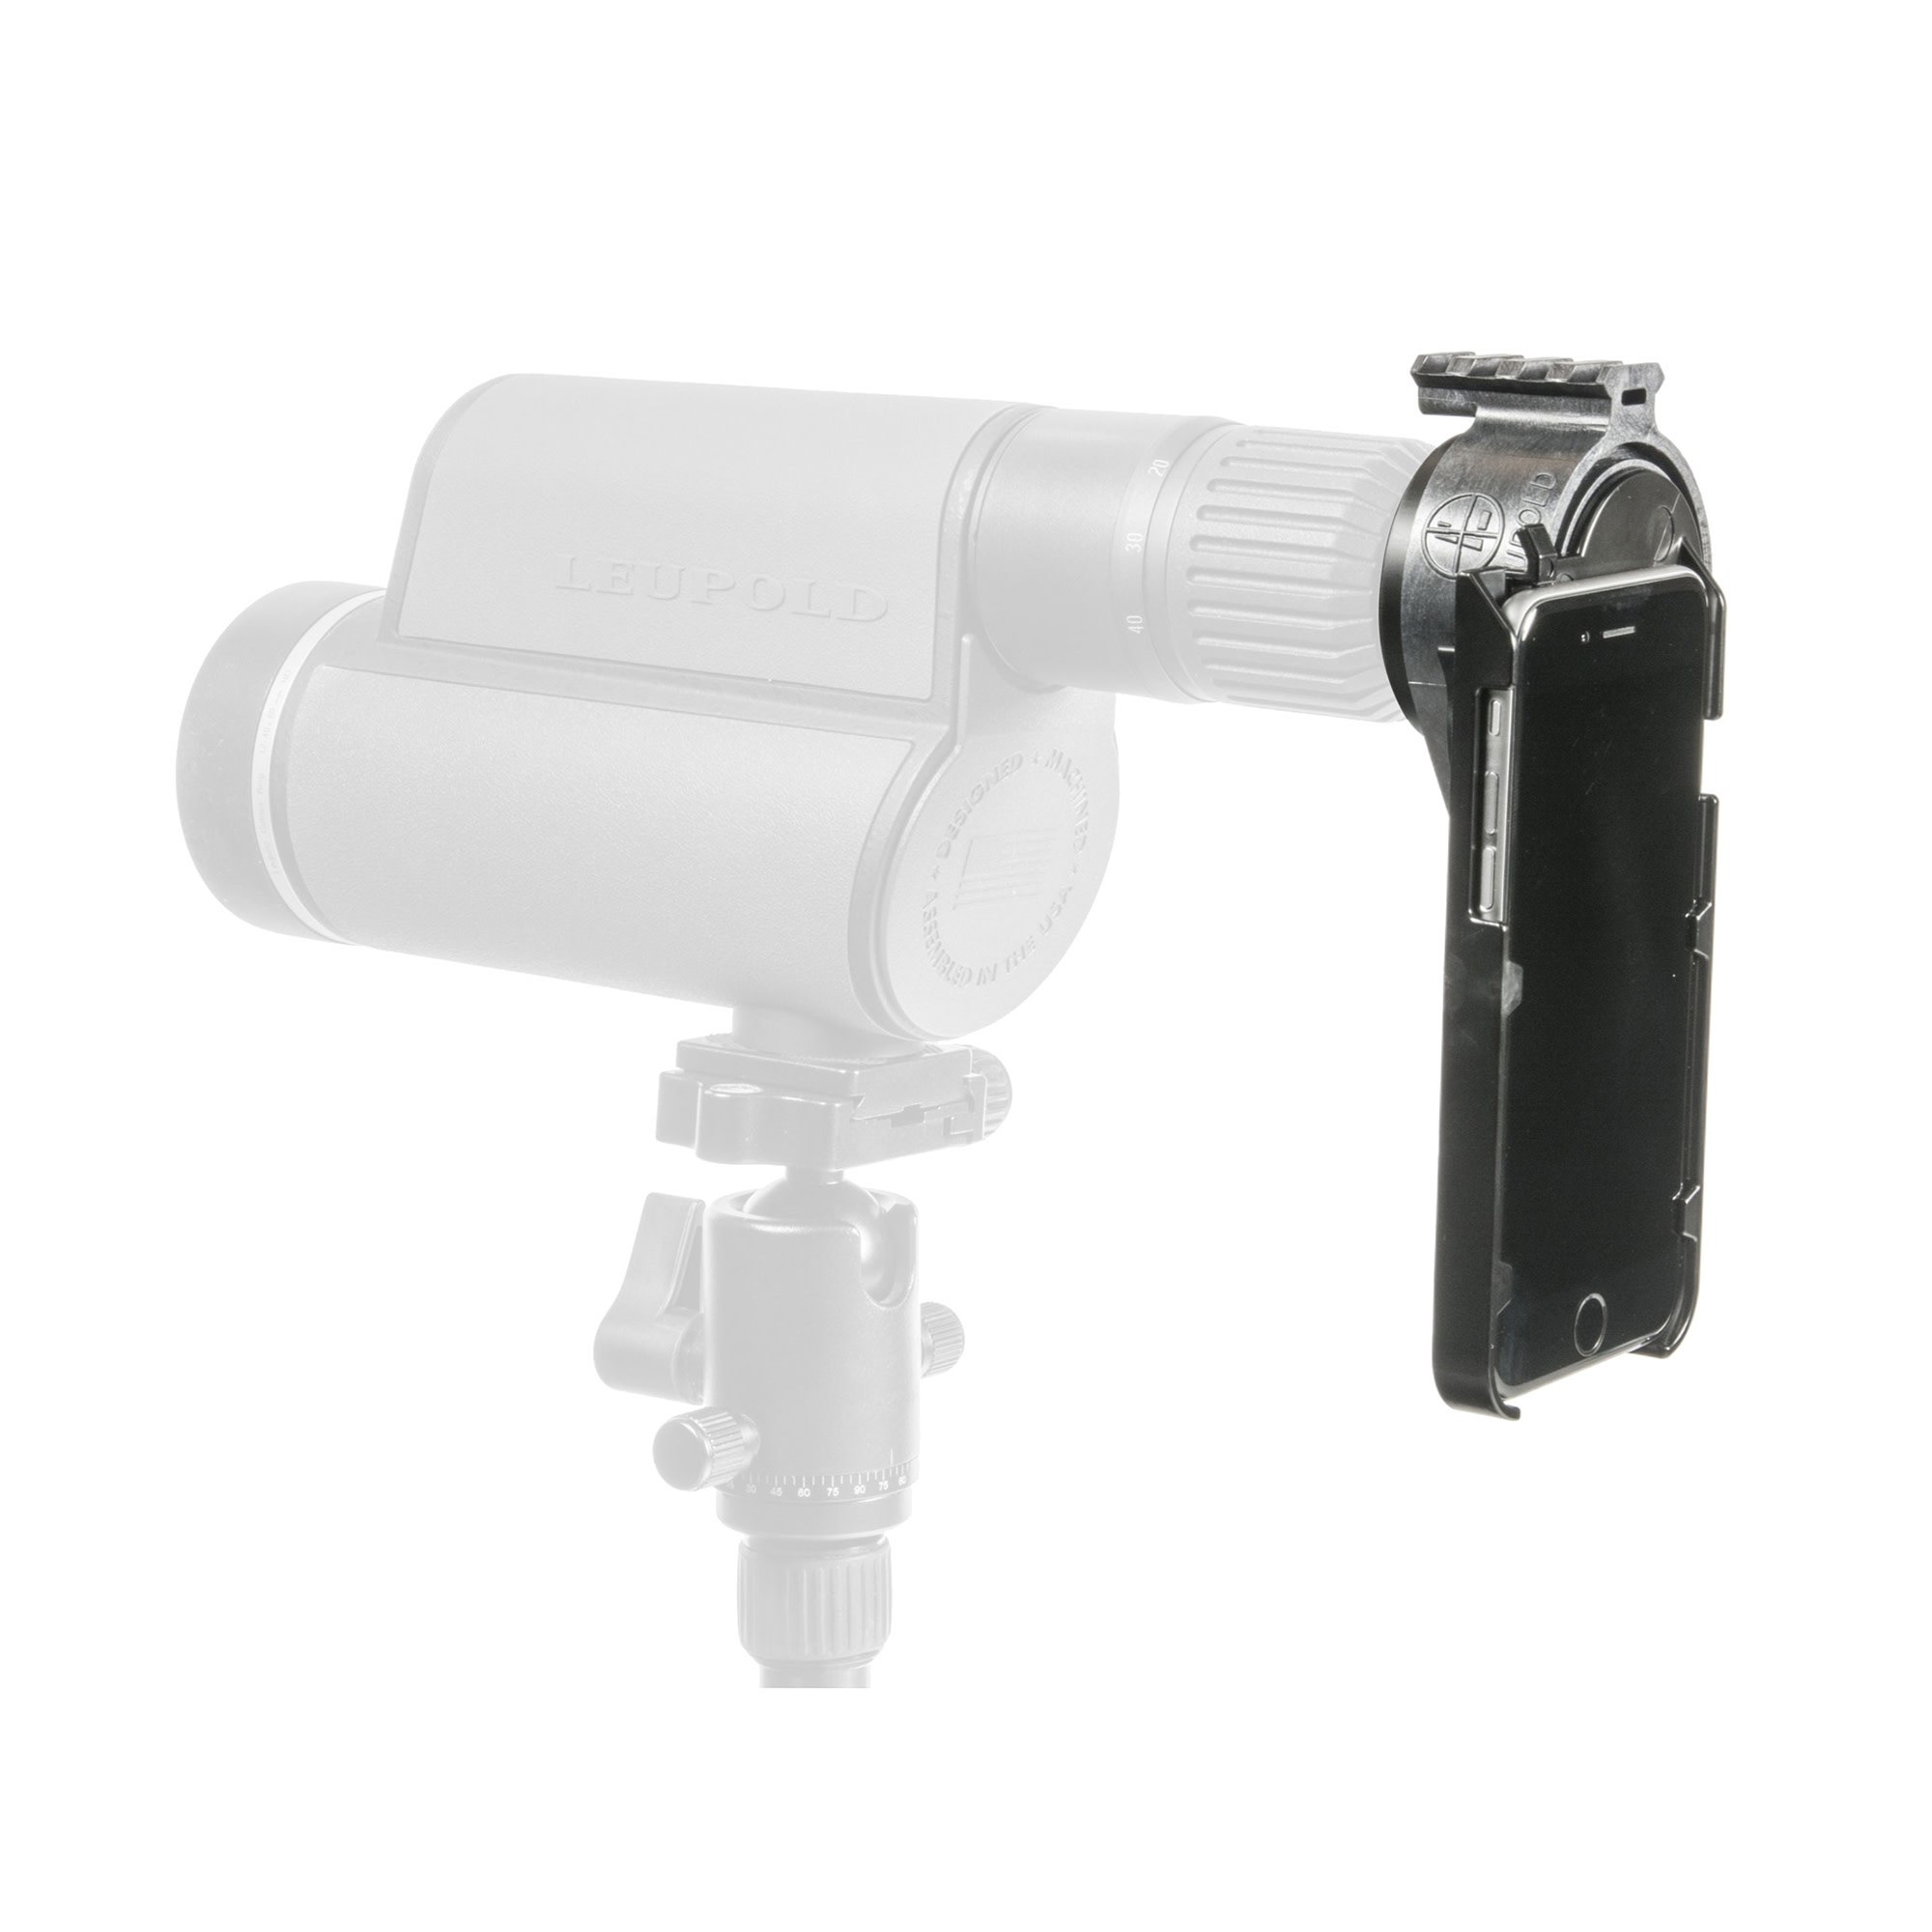 Leupold iPhone 5s Spotting Scope Adapter Kit